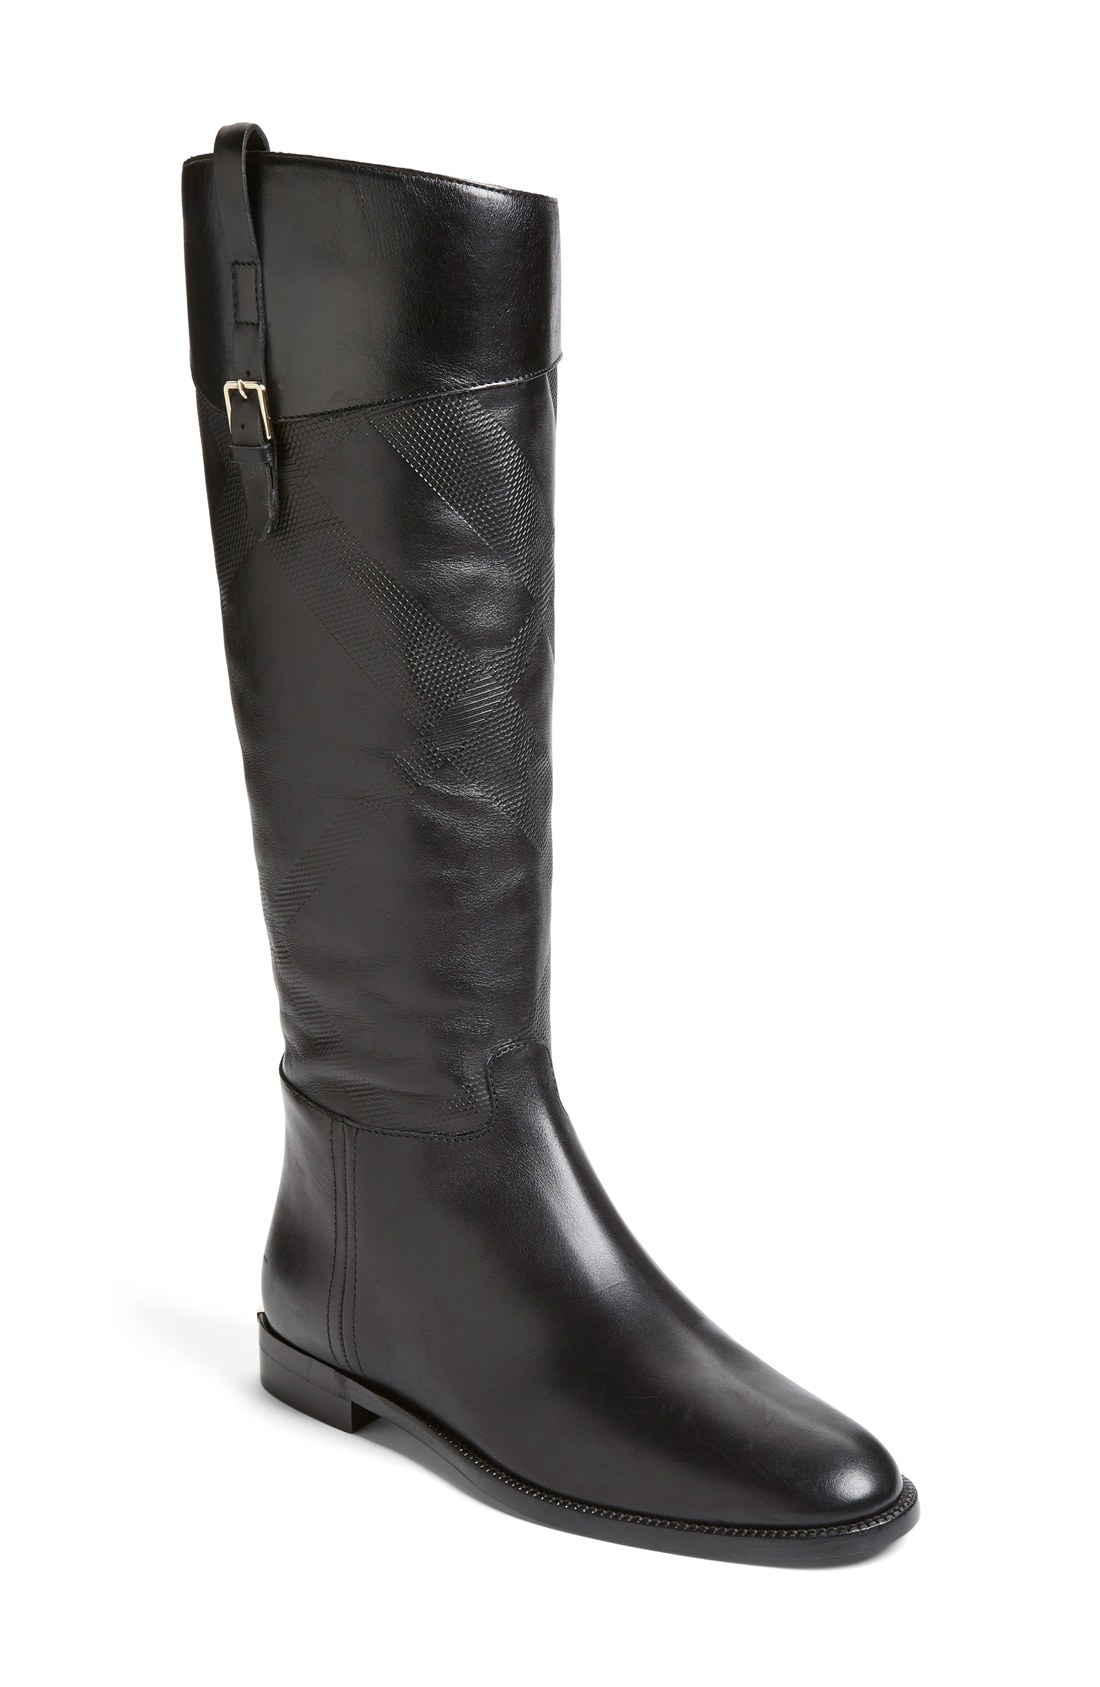 Womens Black Riding Boots Boot Yc